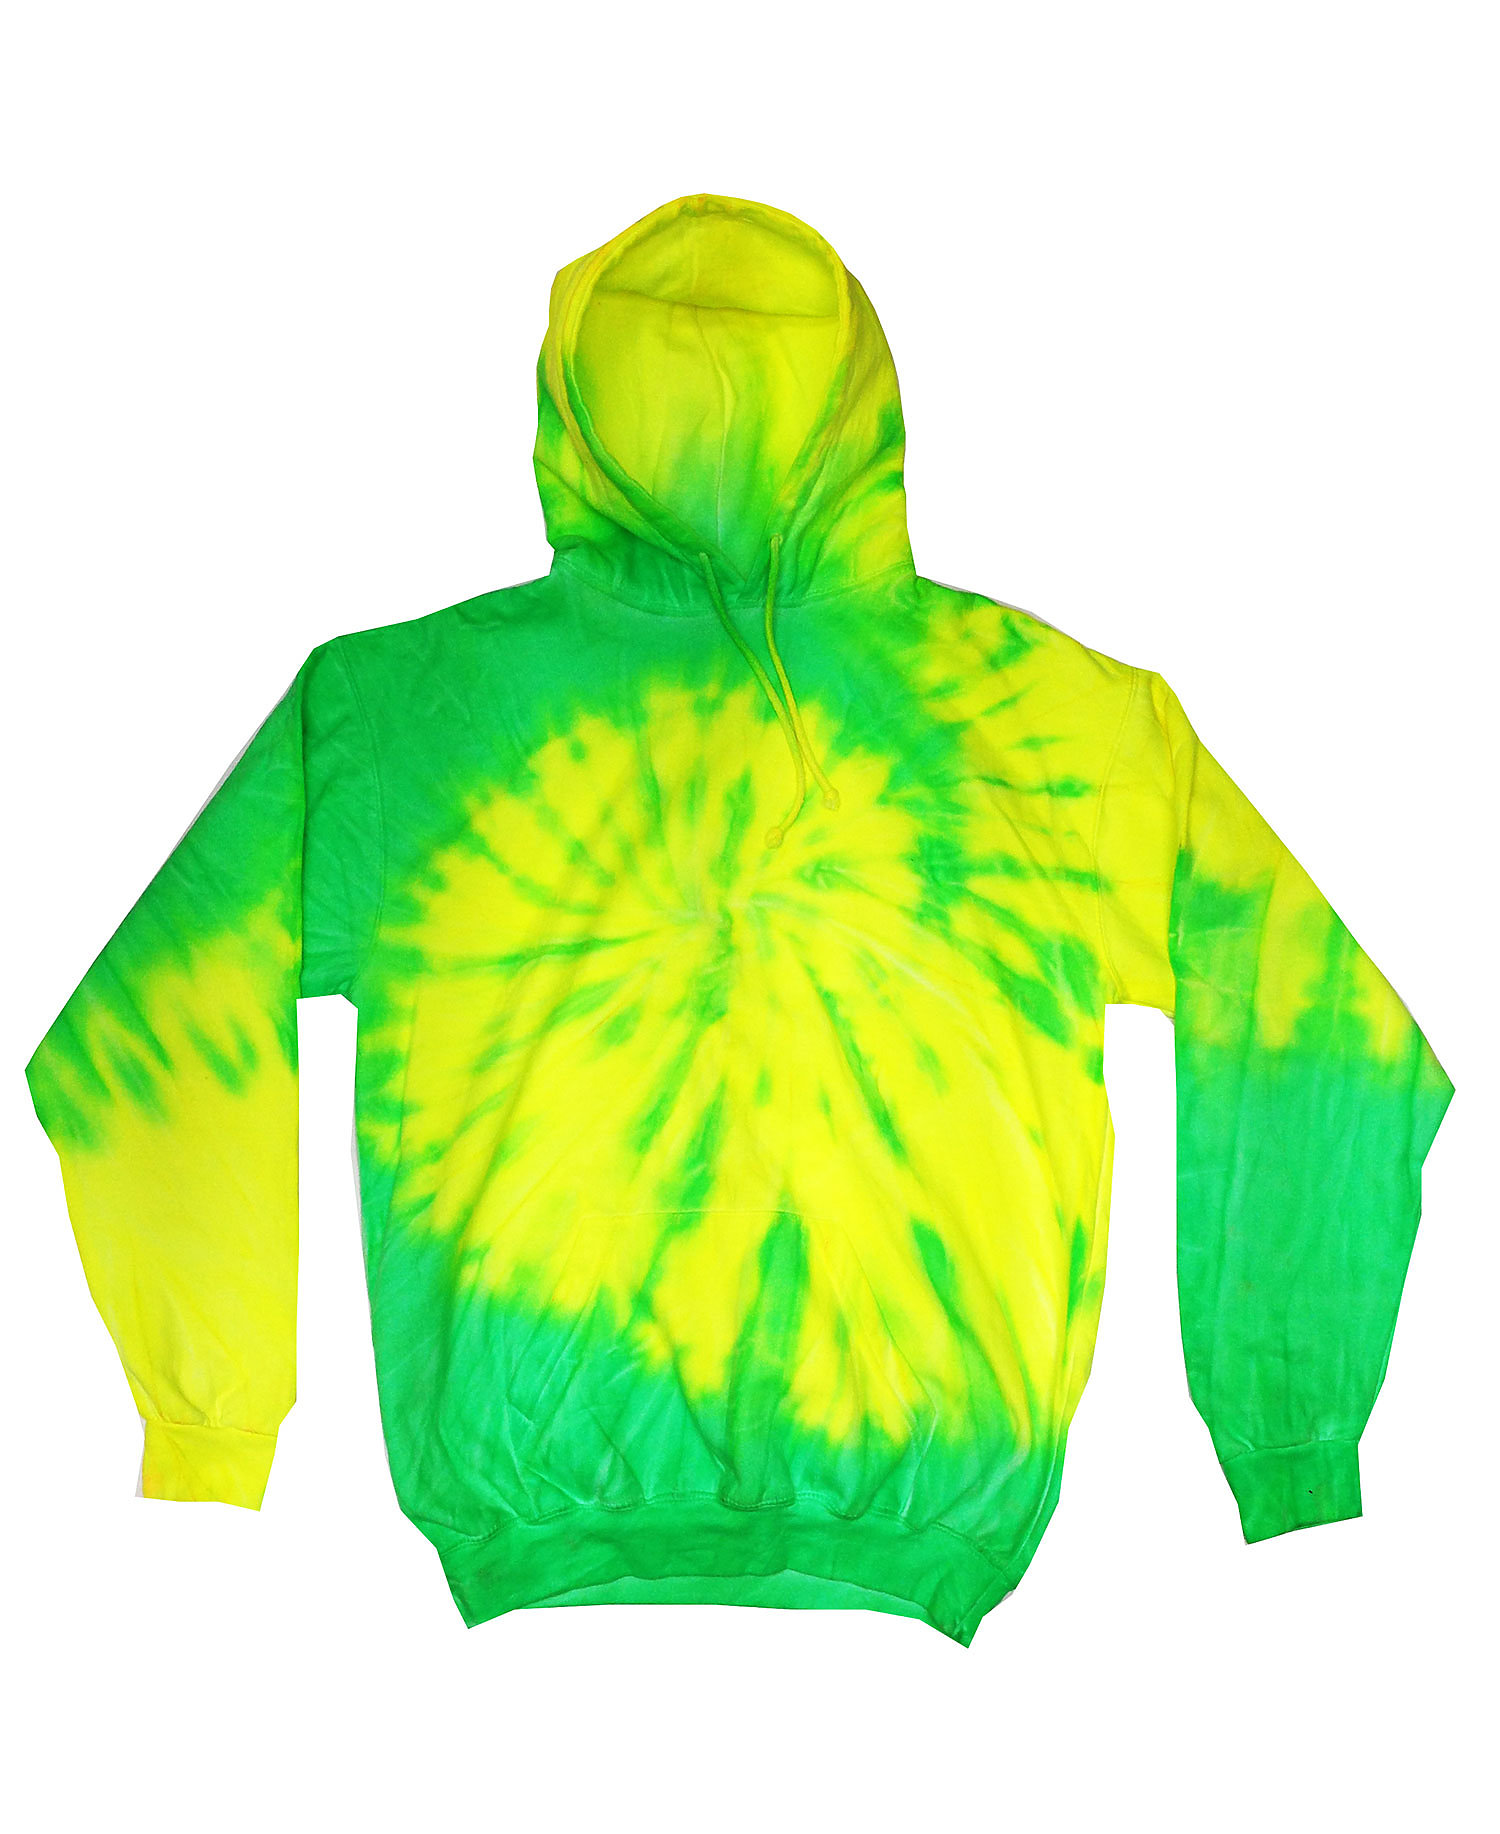 click to view FLO YELLOW/ LIME